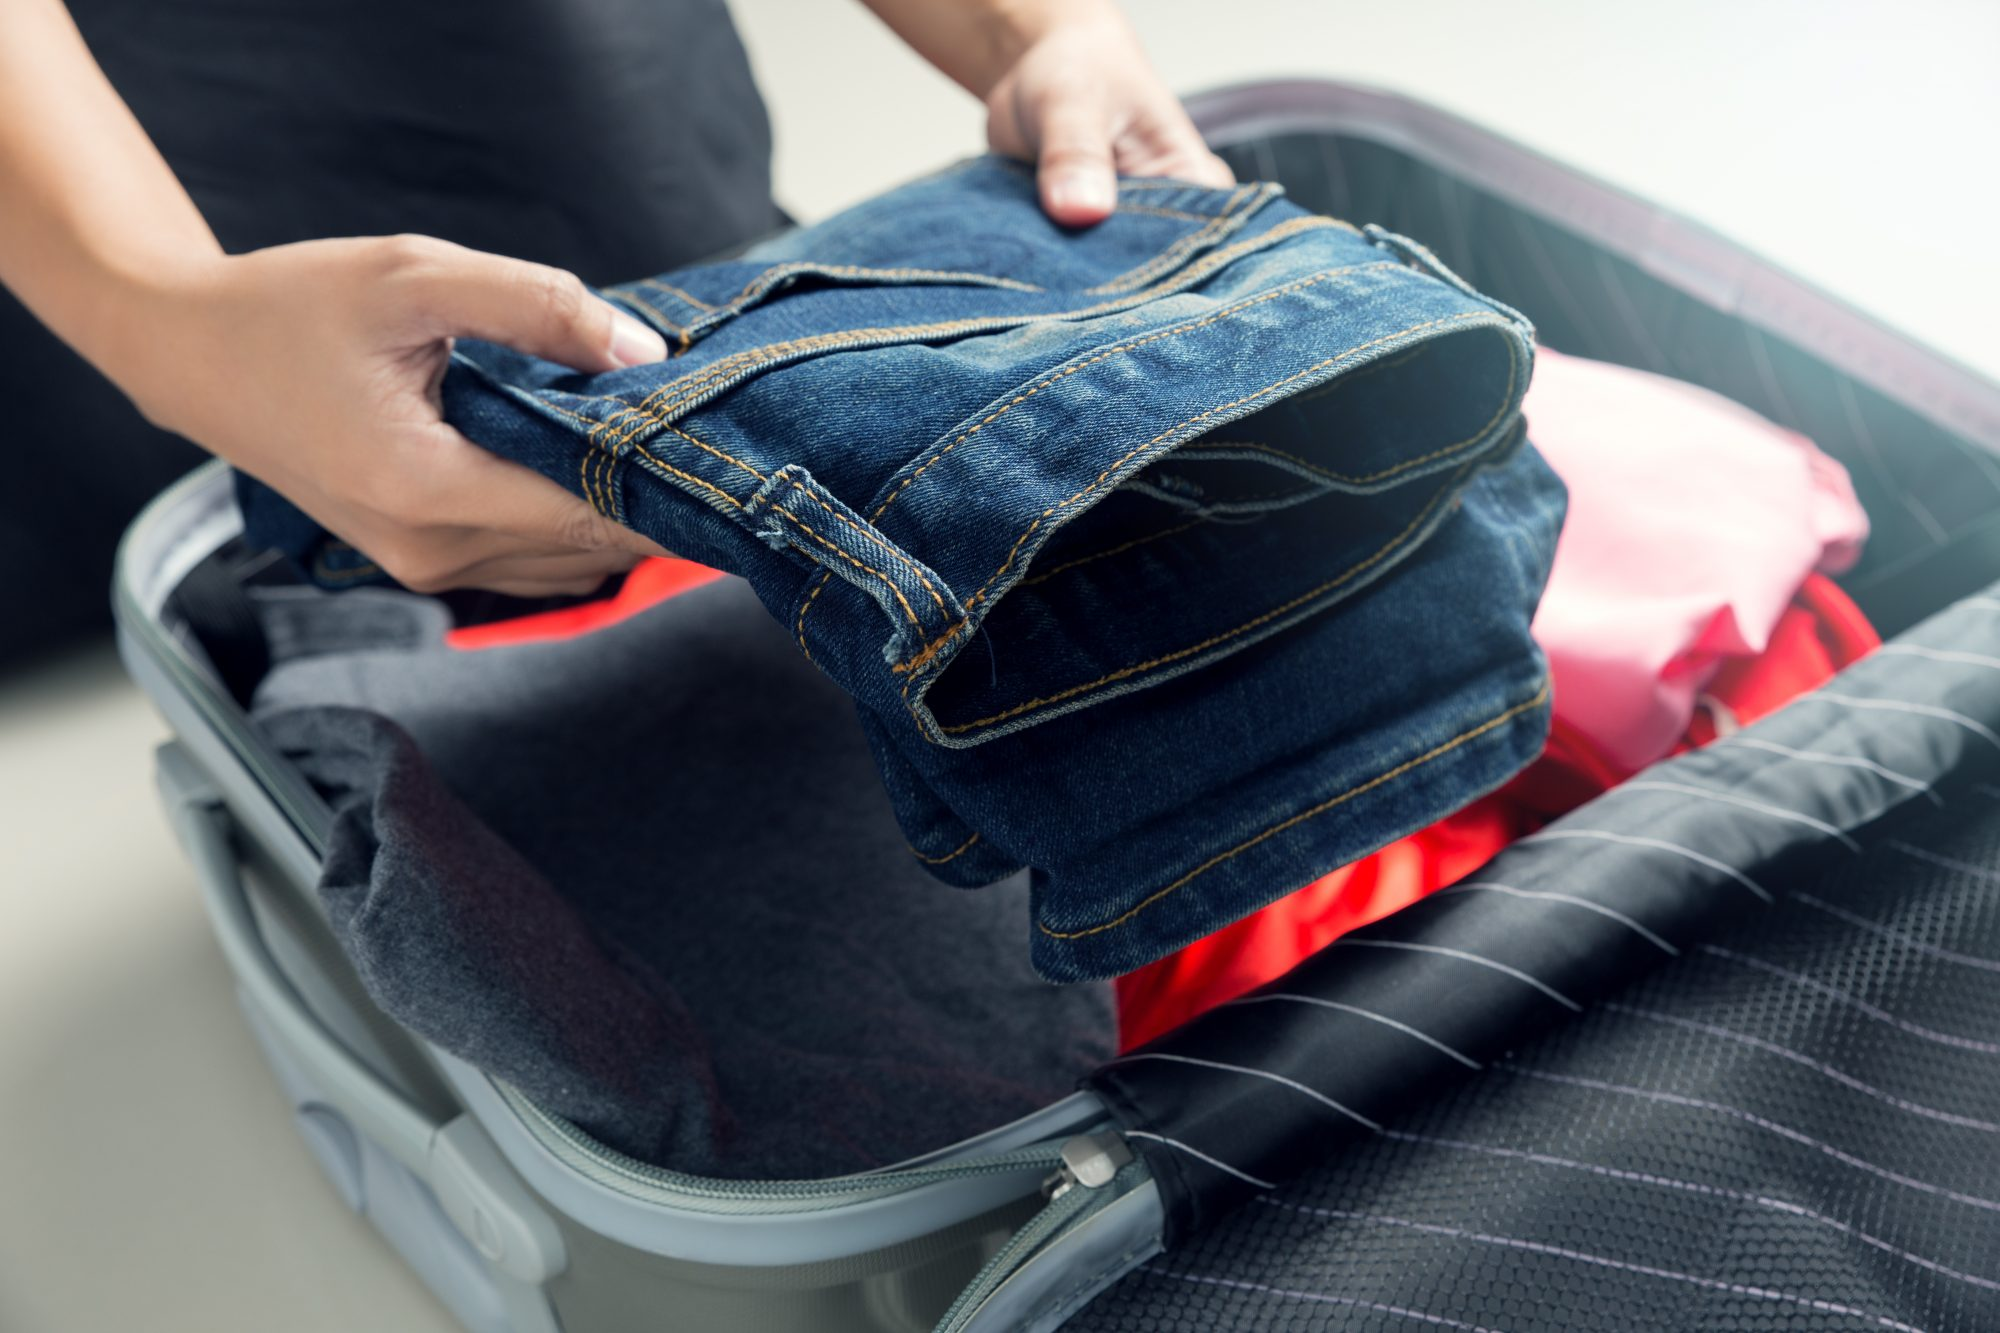 packing jeans in suitcase